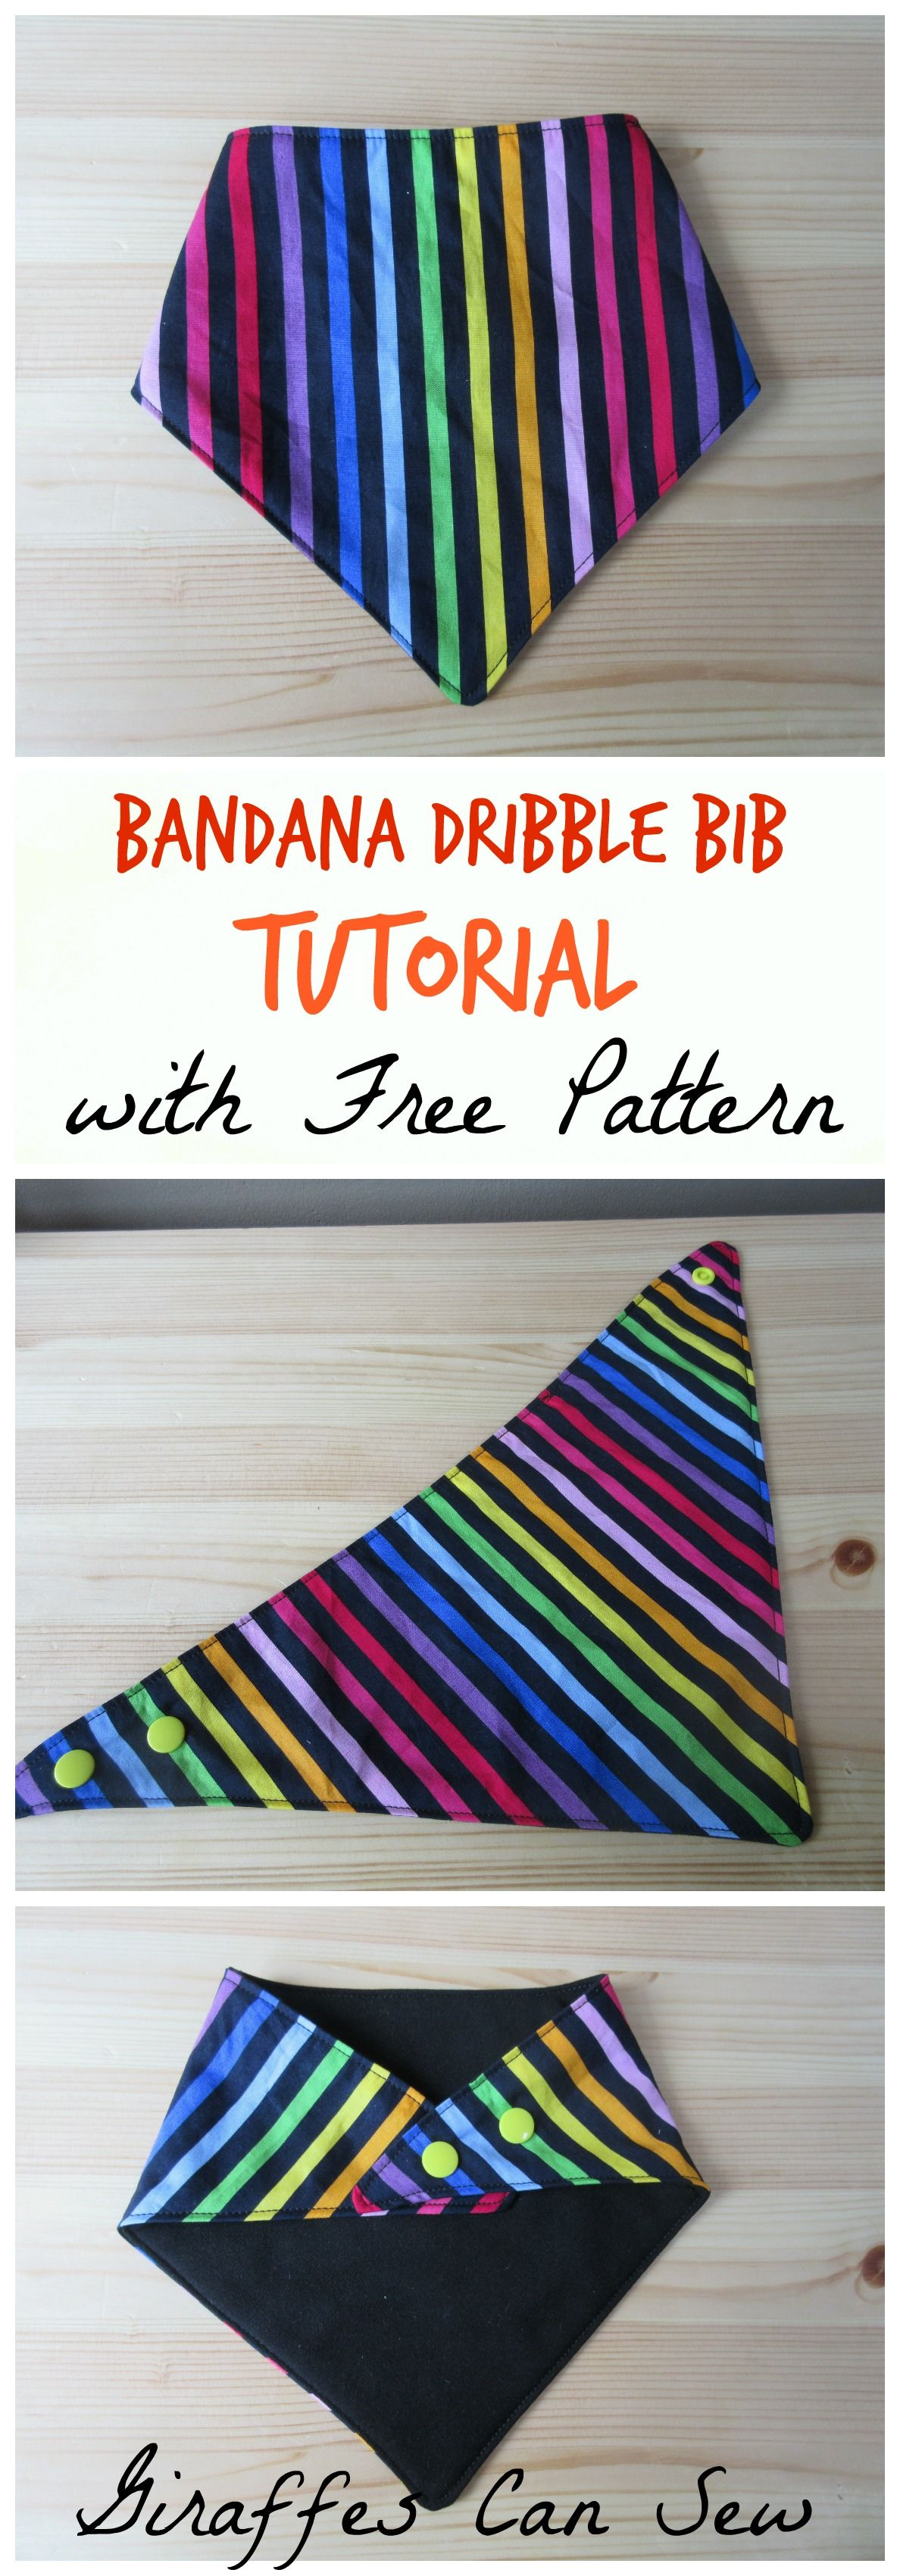 Bandana dribble bib tutorial and free pattern. | Bib pattern ...